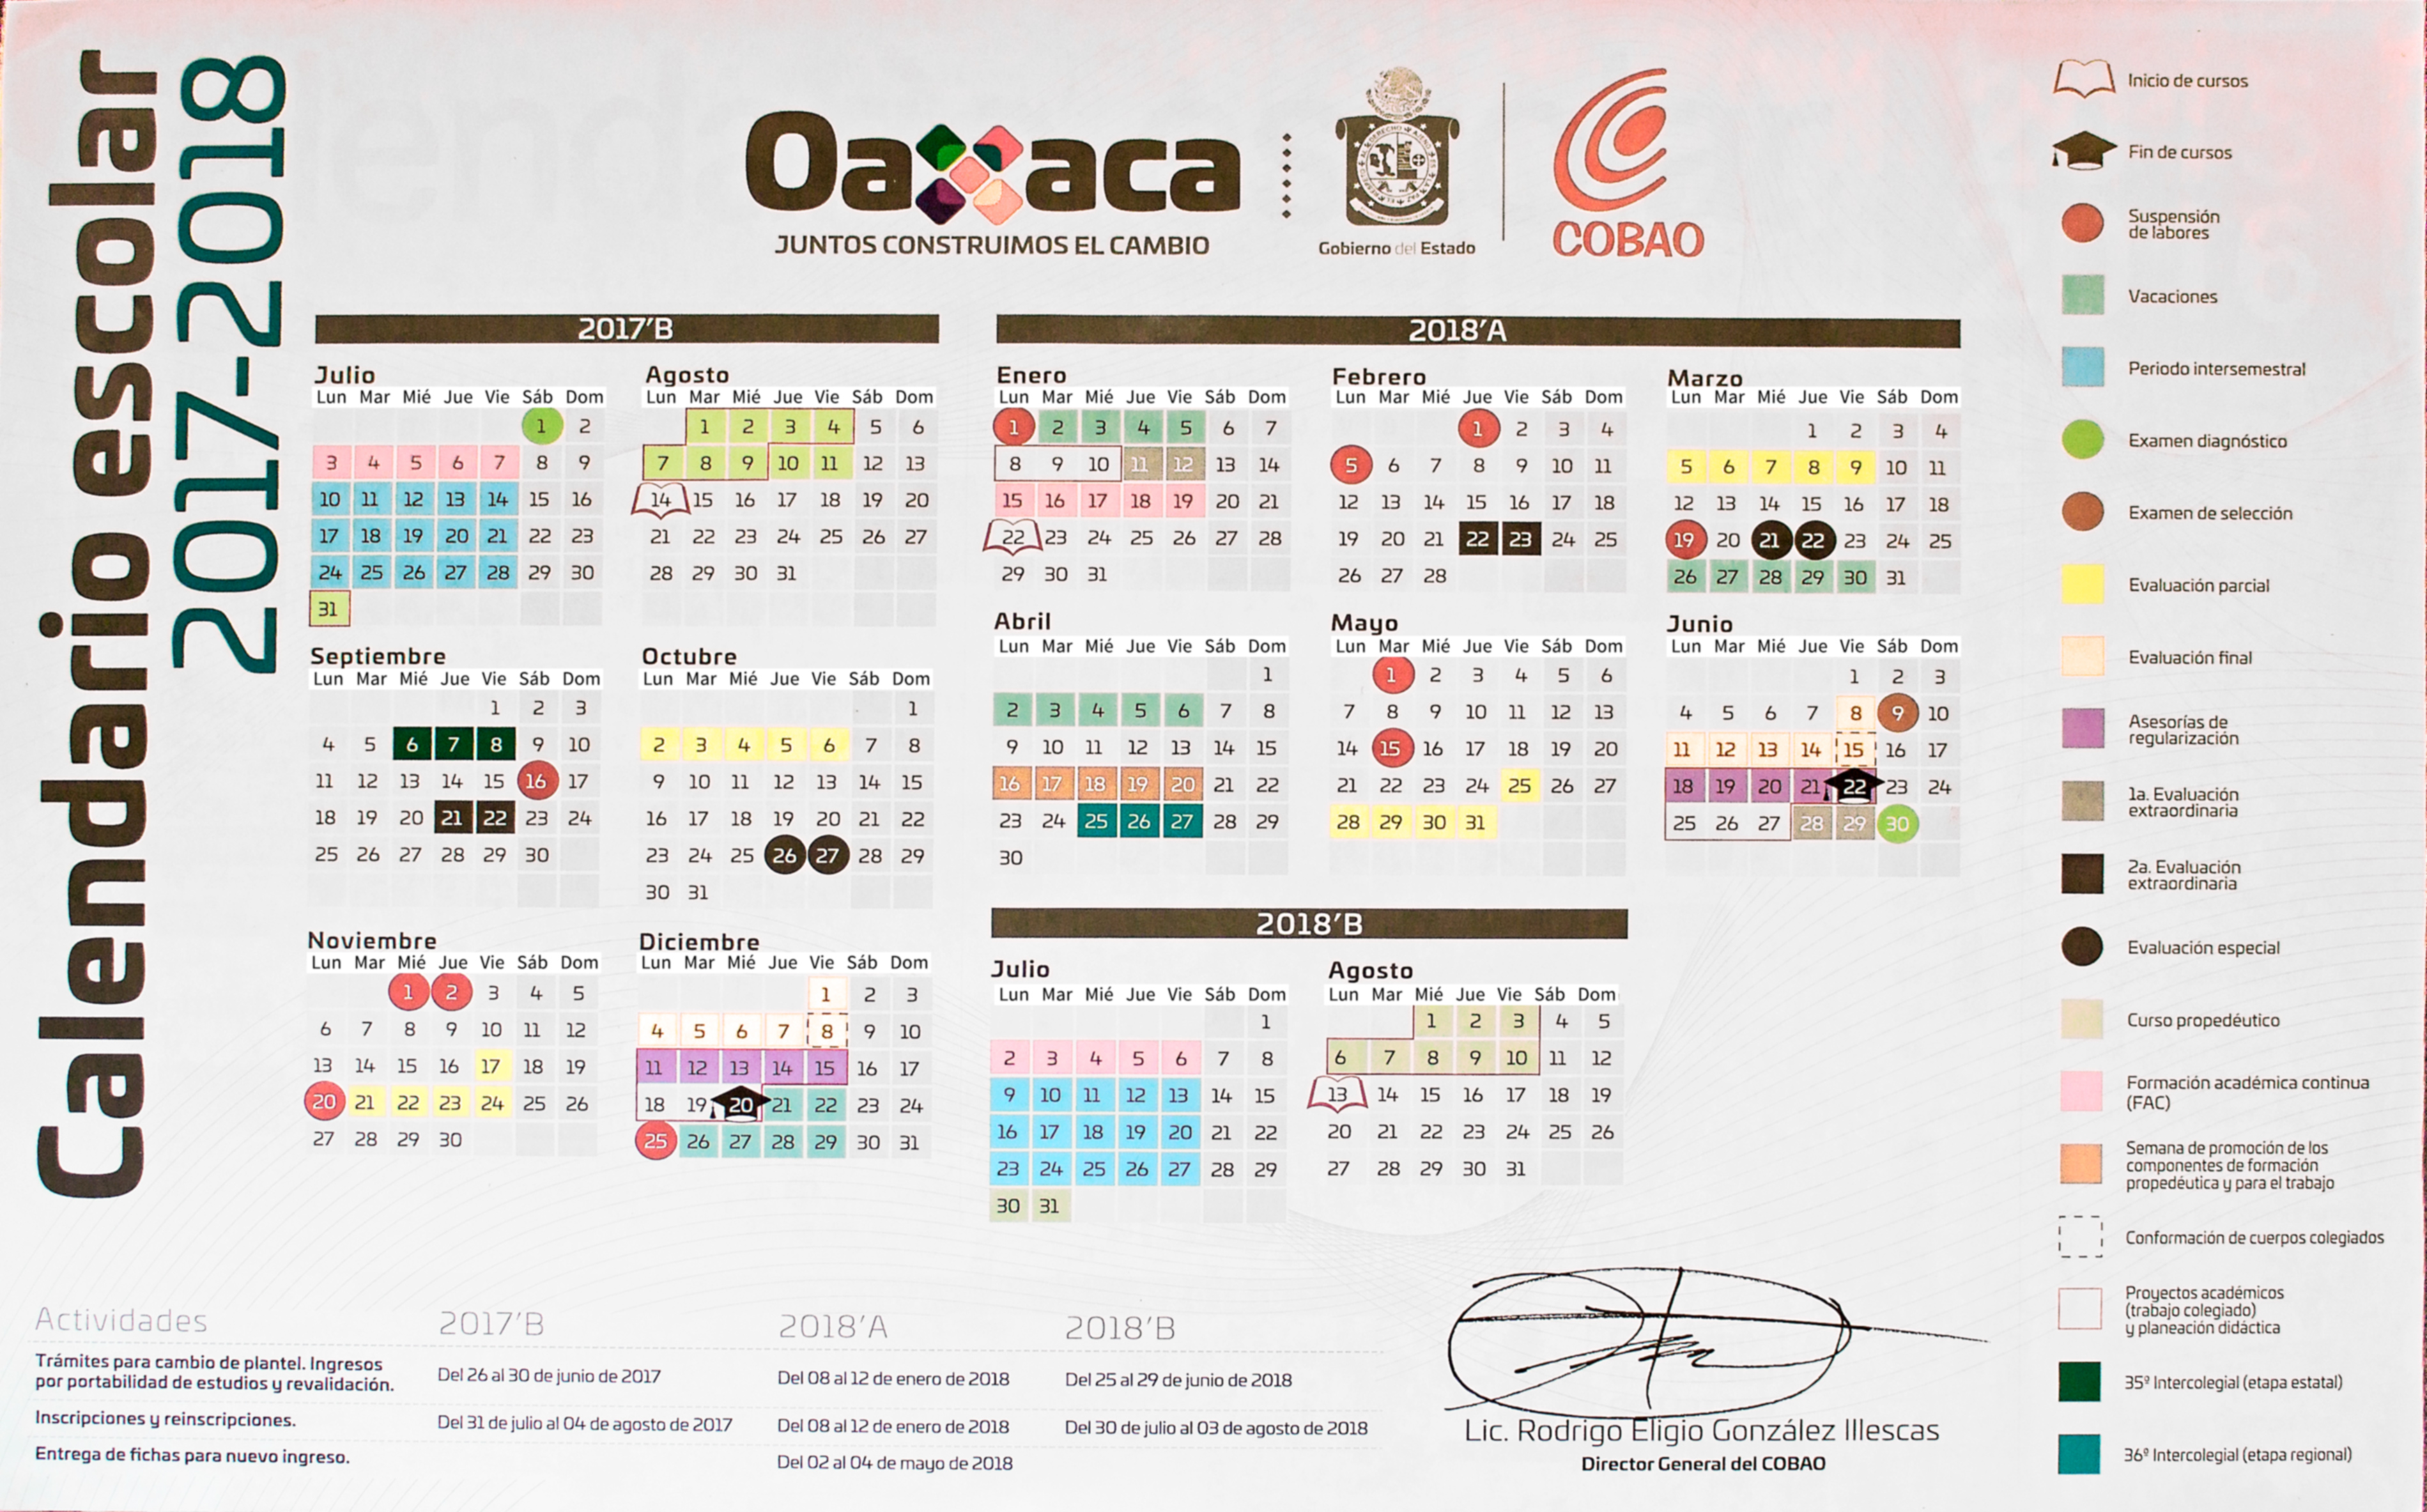 Calendario escolar 2017 2018 cobao calendario escolar 2017 2018 cobao thecheapjerseys Image collections